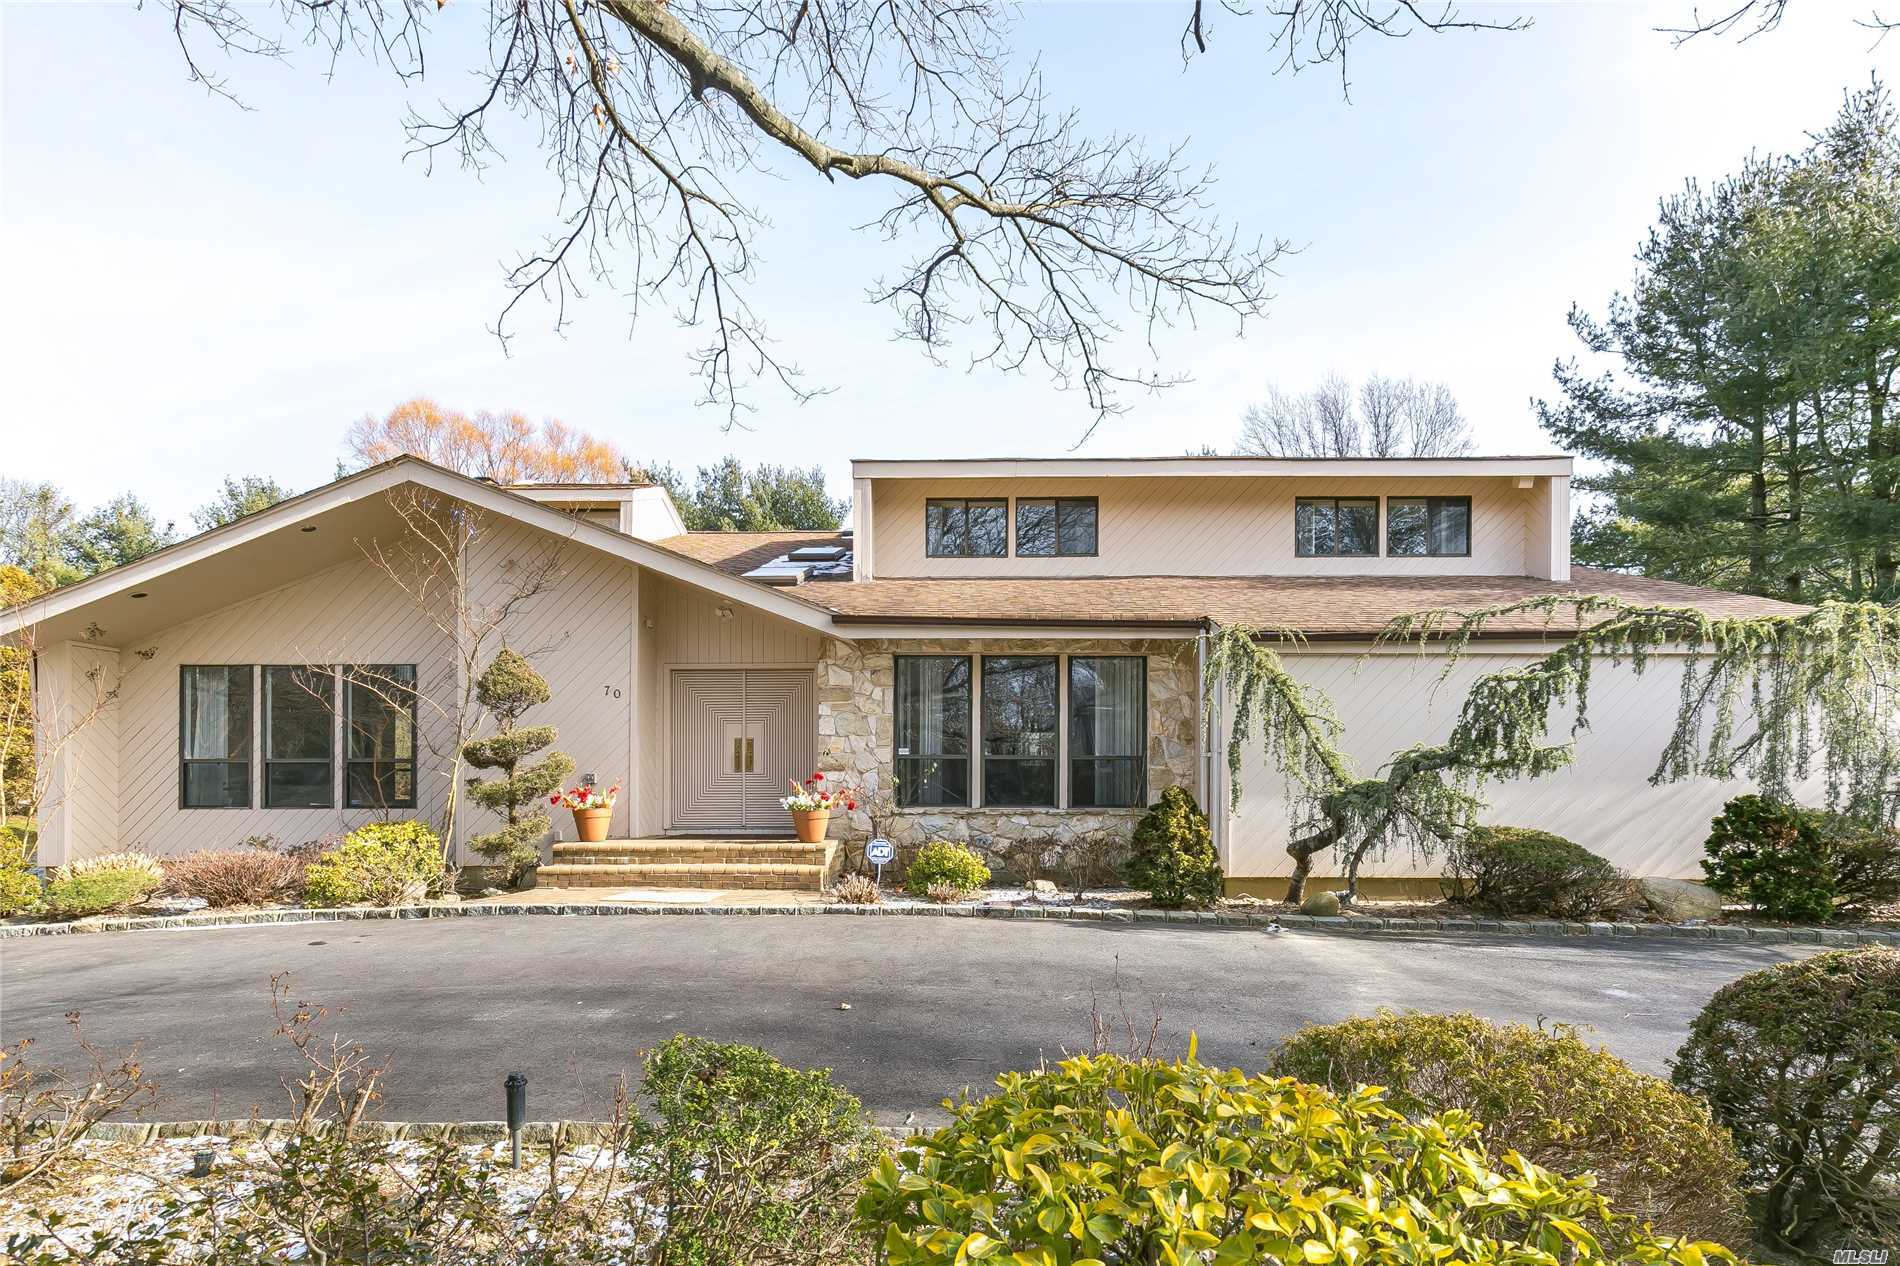 Well Maintained Contemporary Home Over 4000 Sqft, Large Ef, Open Floor Plan, Hardwood Floors, Vaulted Ceilings, Updated Eat-In-Kitchen Leading To Den/Fpl, Large Master Suite, Circular Driveway, Professionally Landscaped! Low Taxes! Syosset Schools!